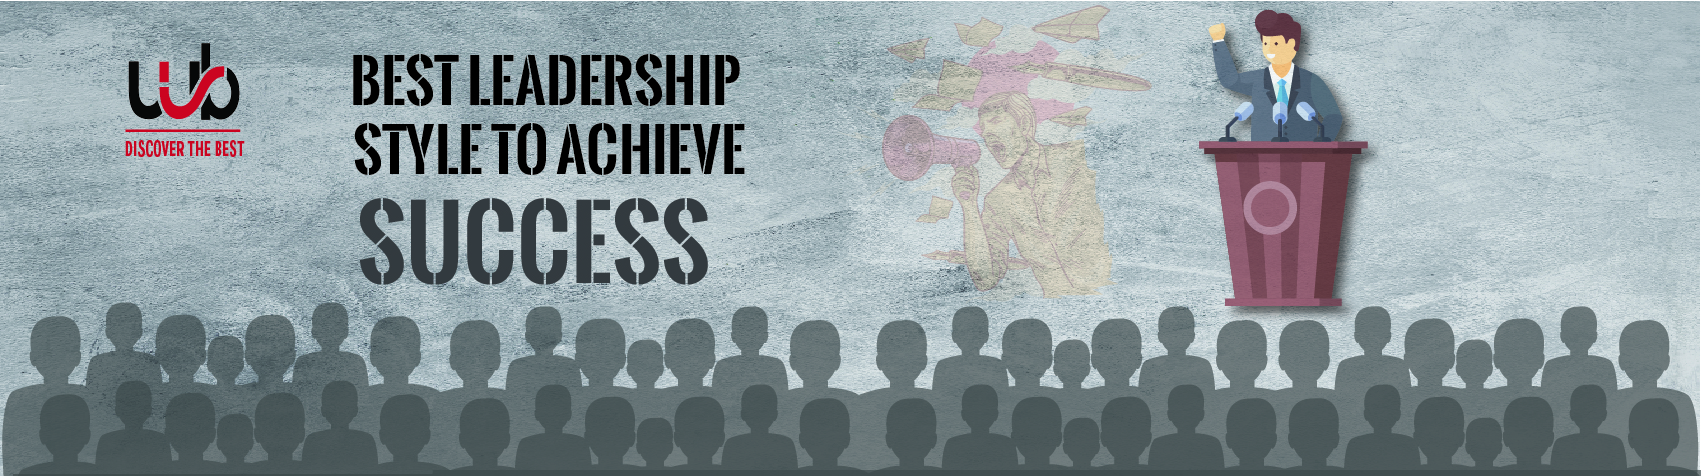 Best Leadership Styles To Achieve Success